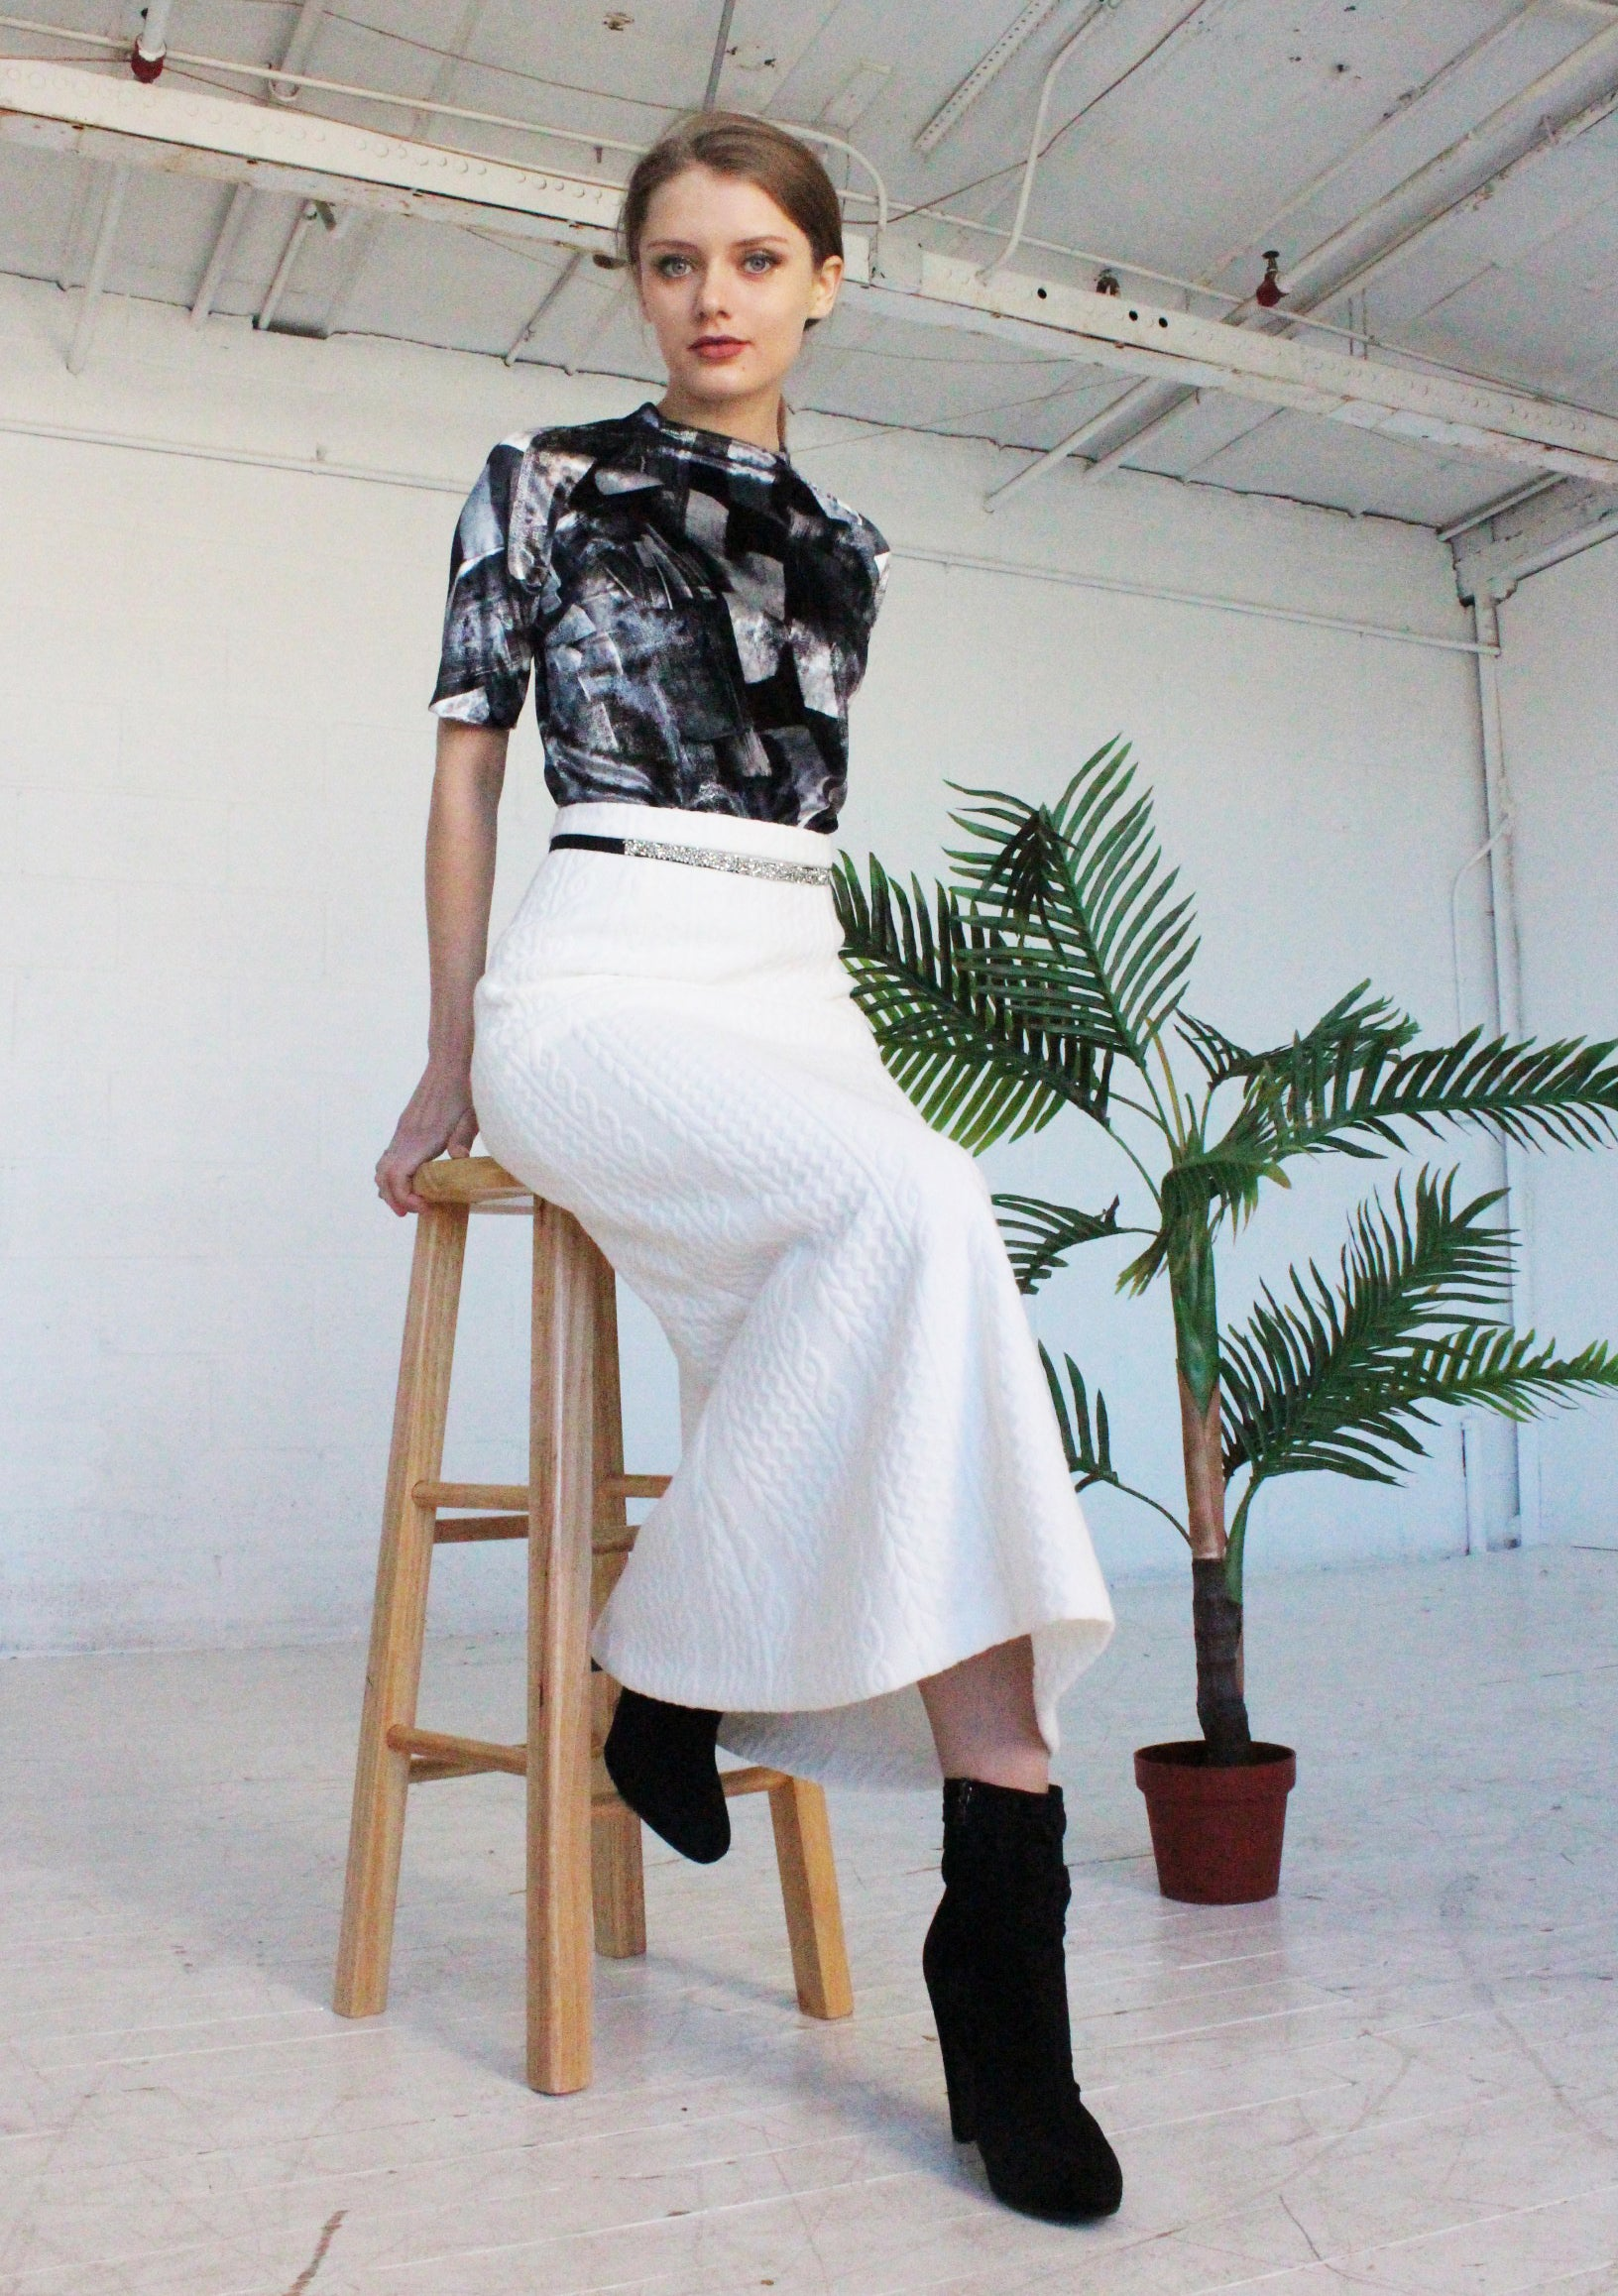 Ying Cai _ AW 21 Look 8 - 5